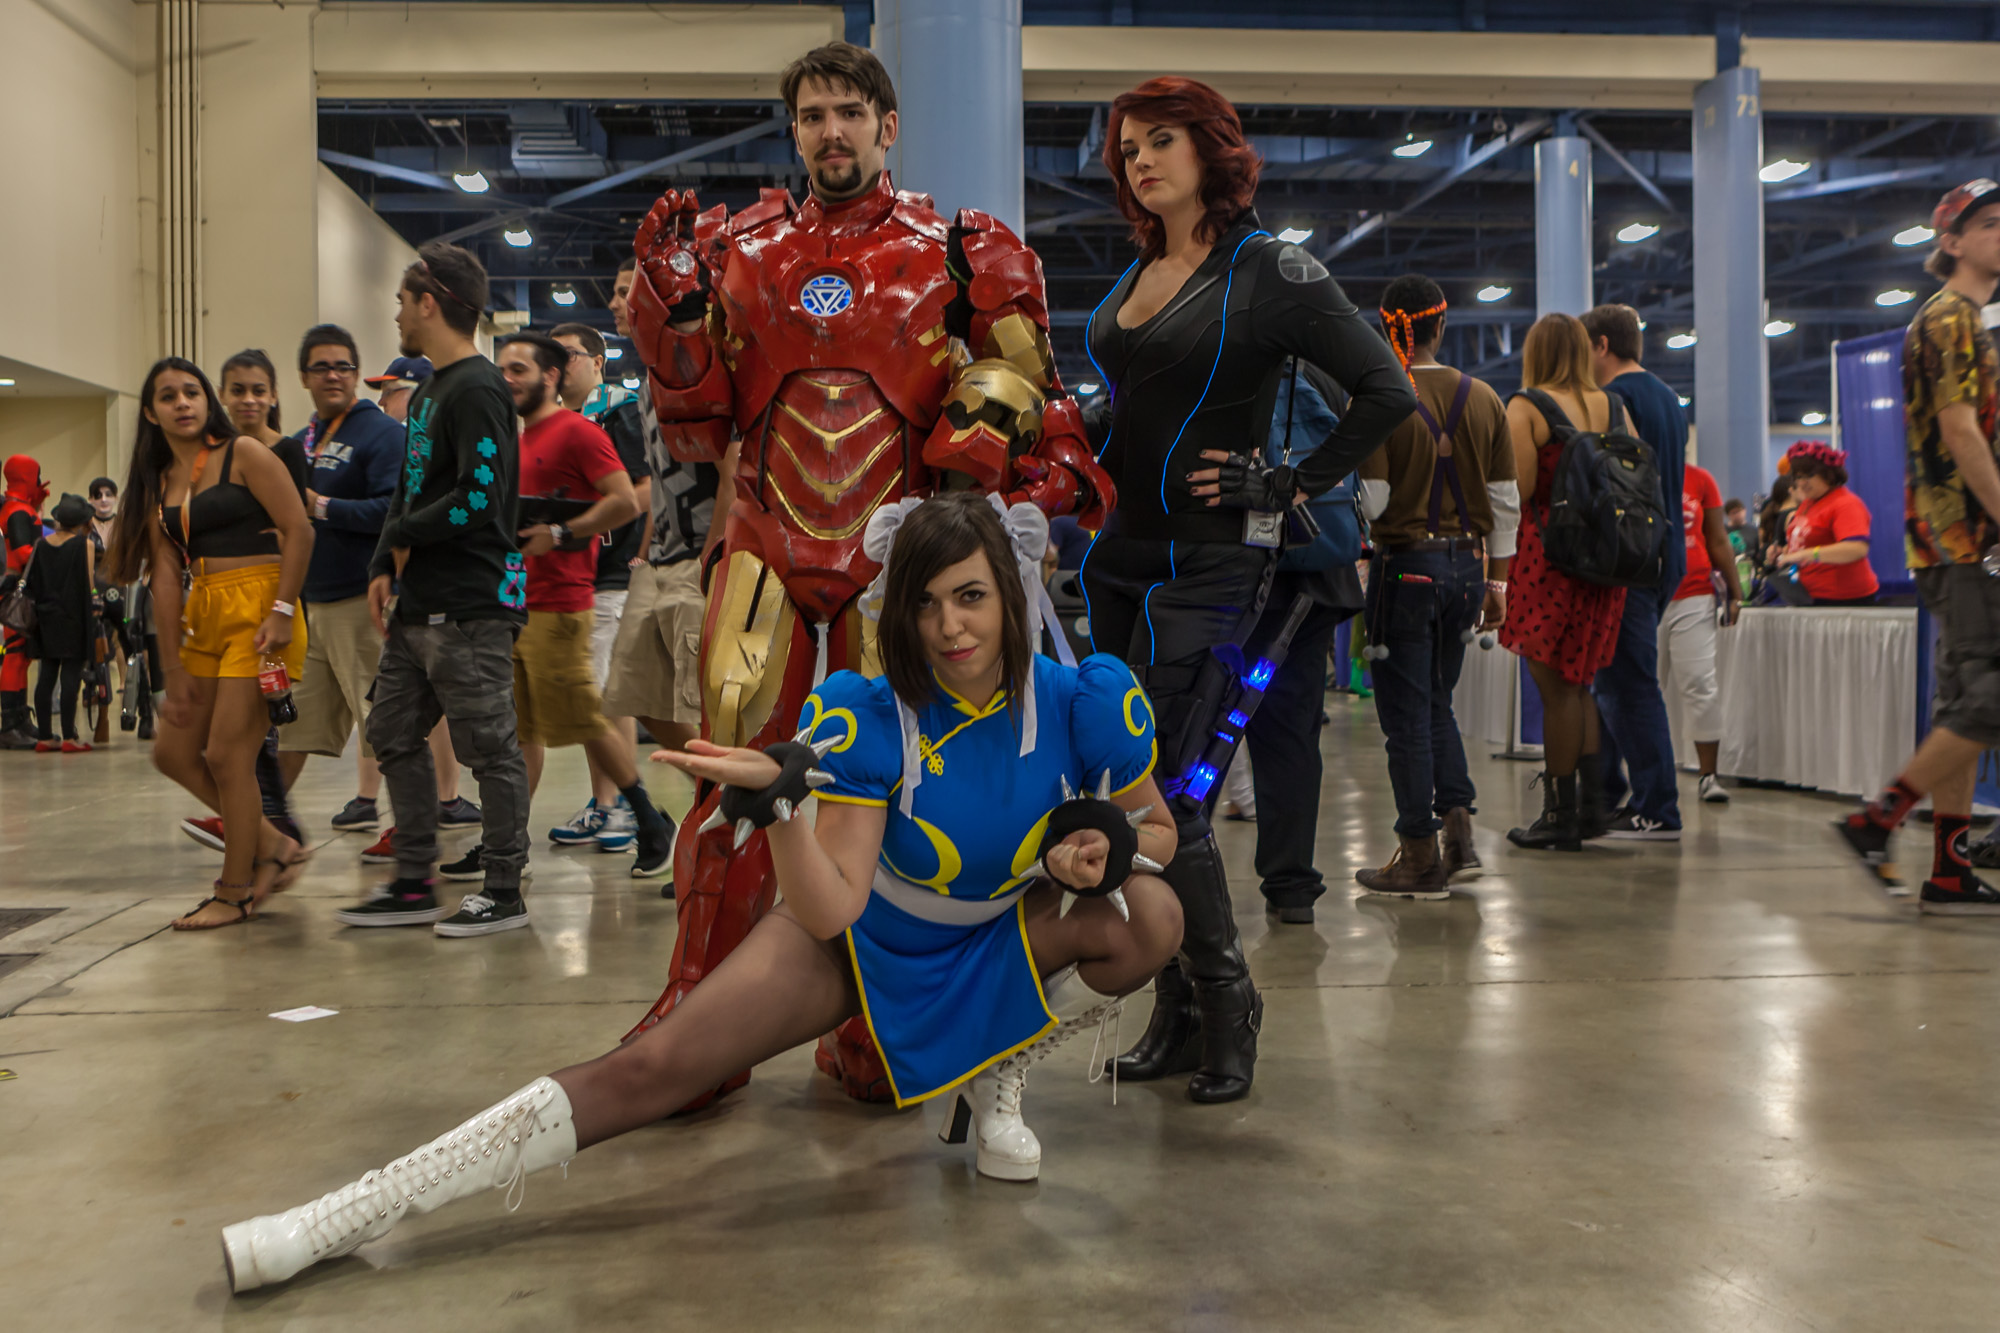 Recap of the 2015 Supercon in Miami Beach